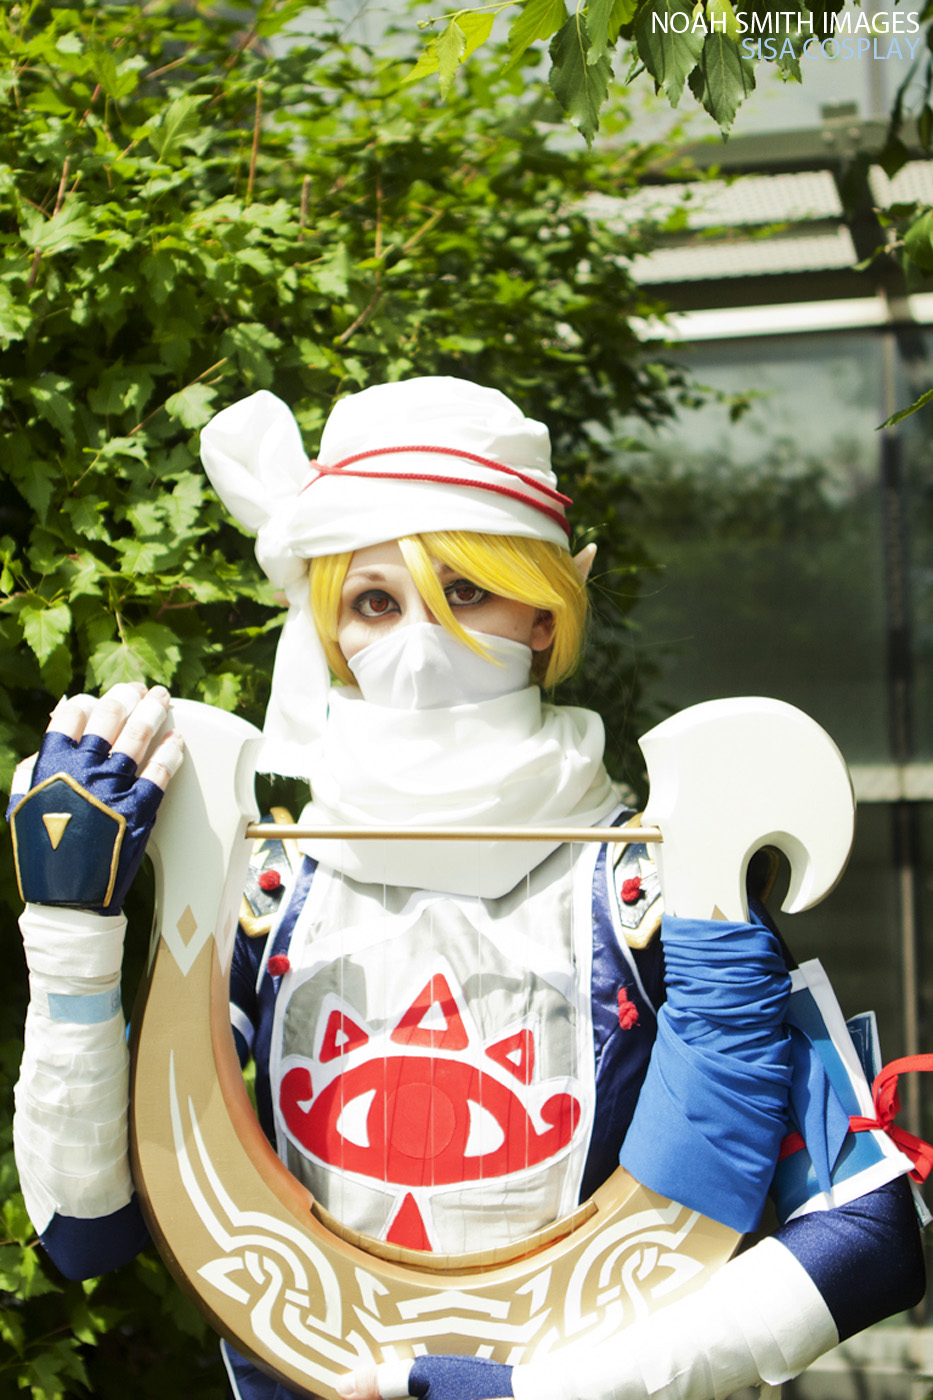 Noah-Smith-Sisa-Cosplay-Sheik-3